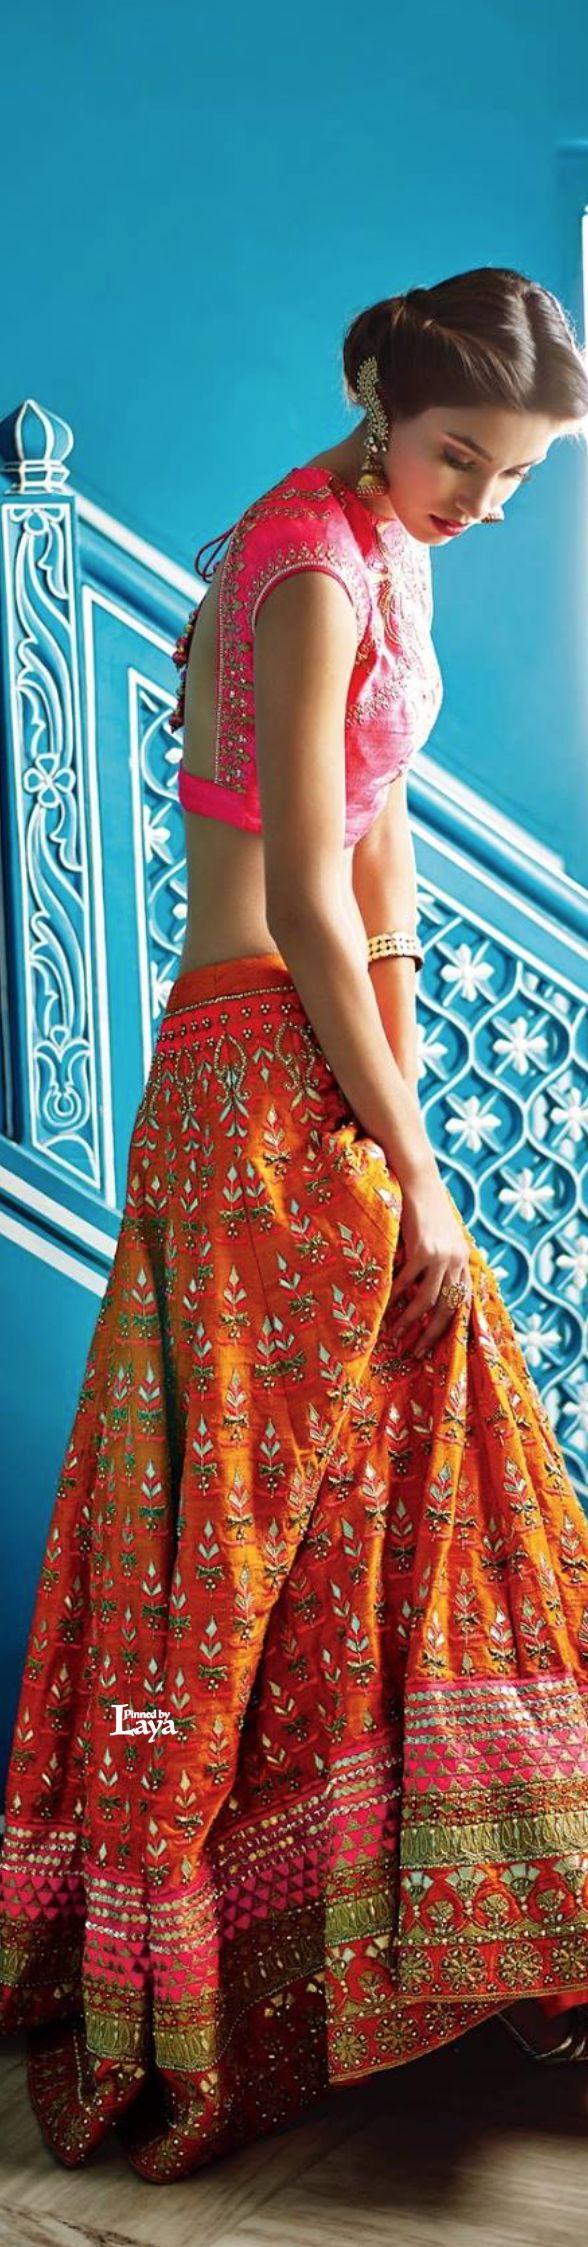 Gorgeous Orange & Pink #Lehenga by @anitadongre shop.AnitaDongre.com <3 (B'ful Choli & EarCuff too)